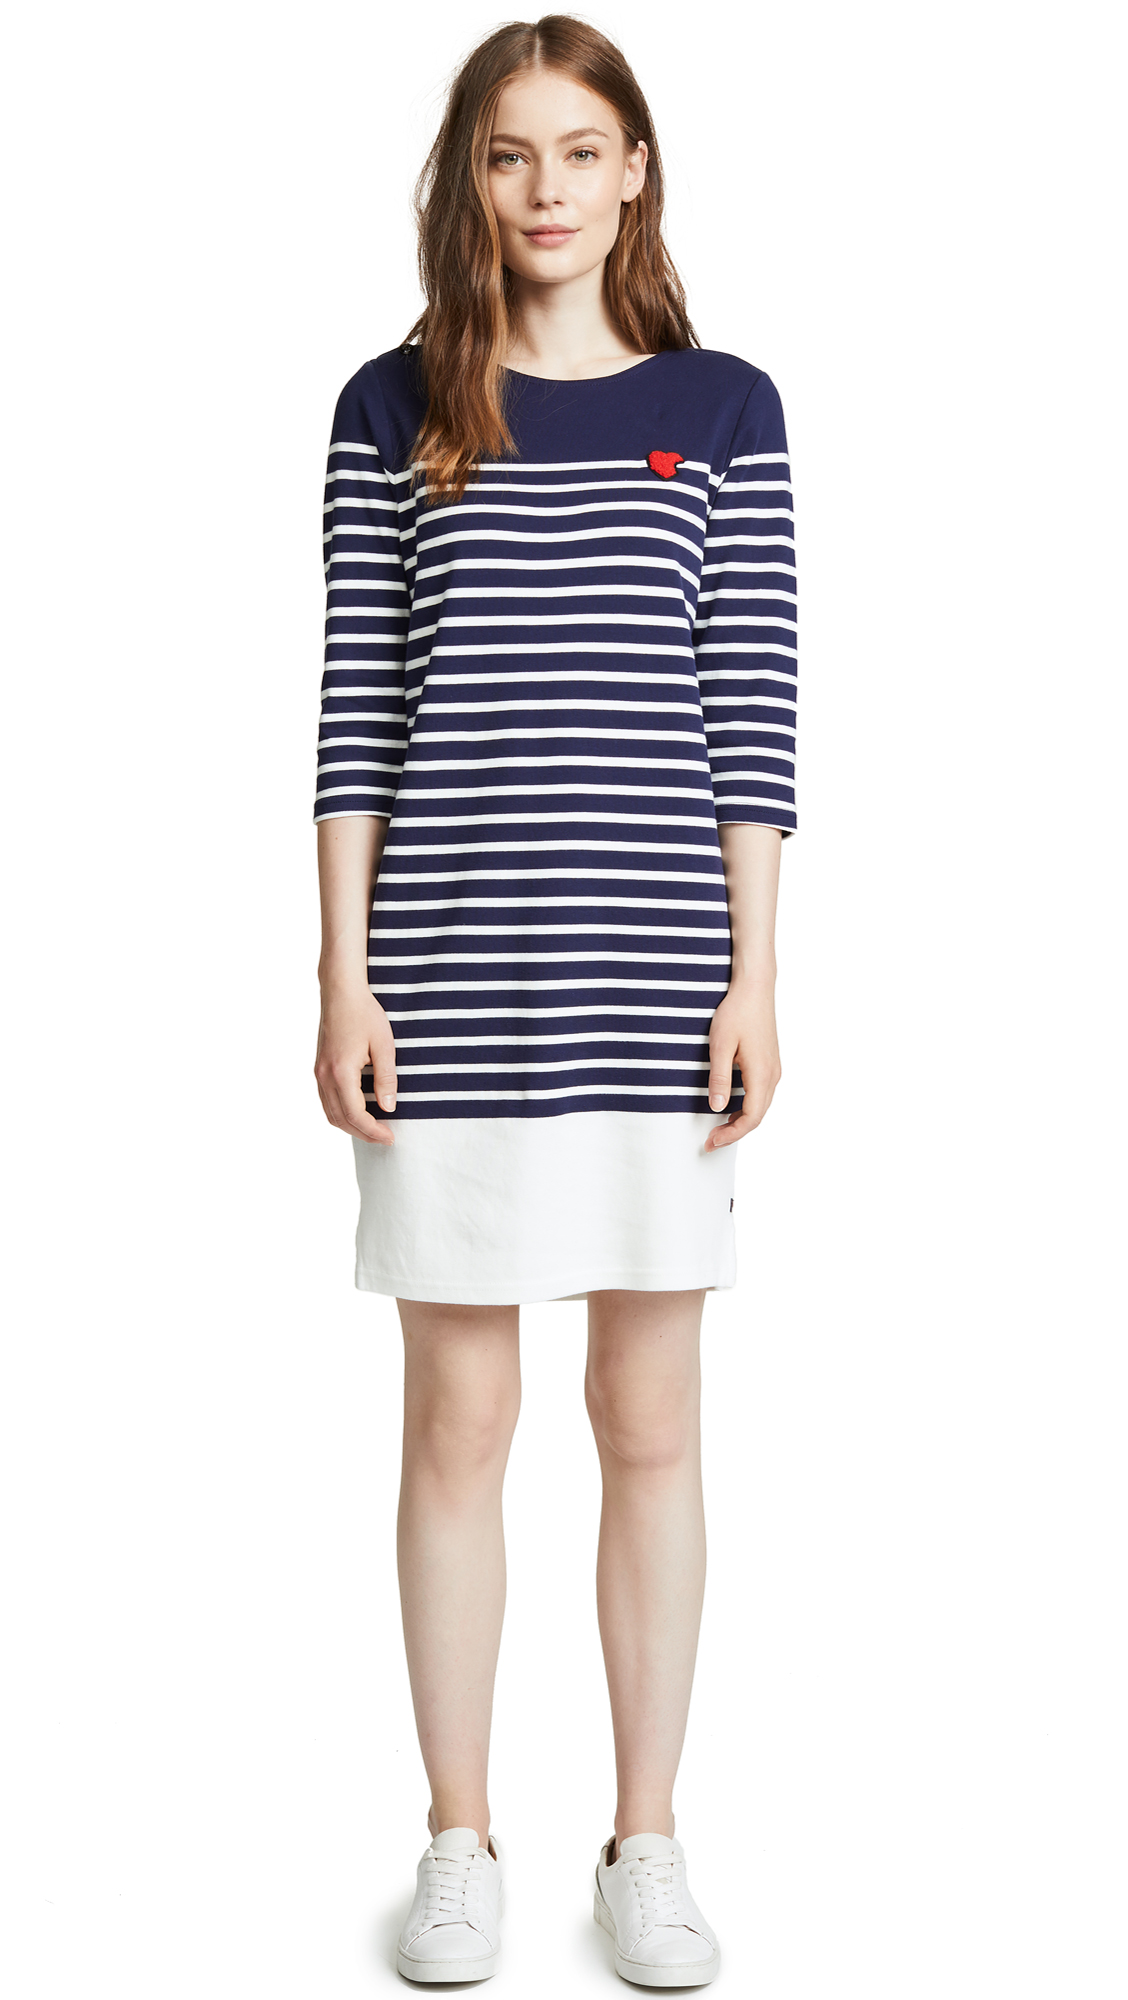 SCOTCH & SODA/MAISON SCOTCH BRETON STRIPED DRESS